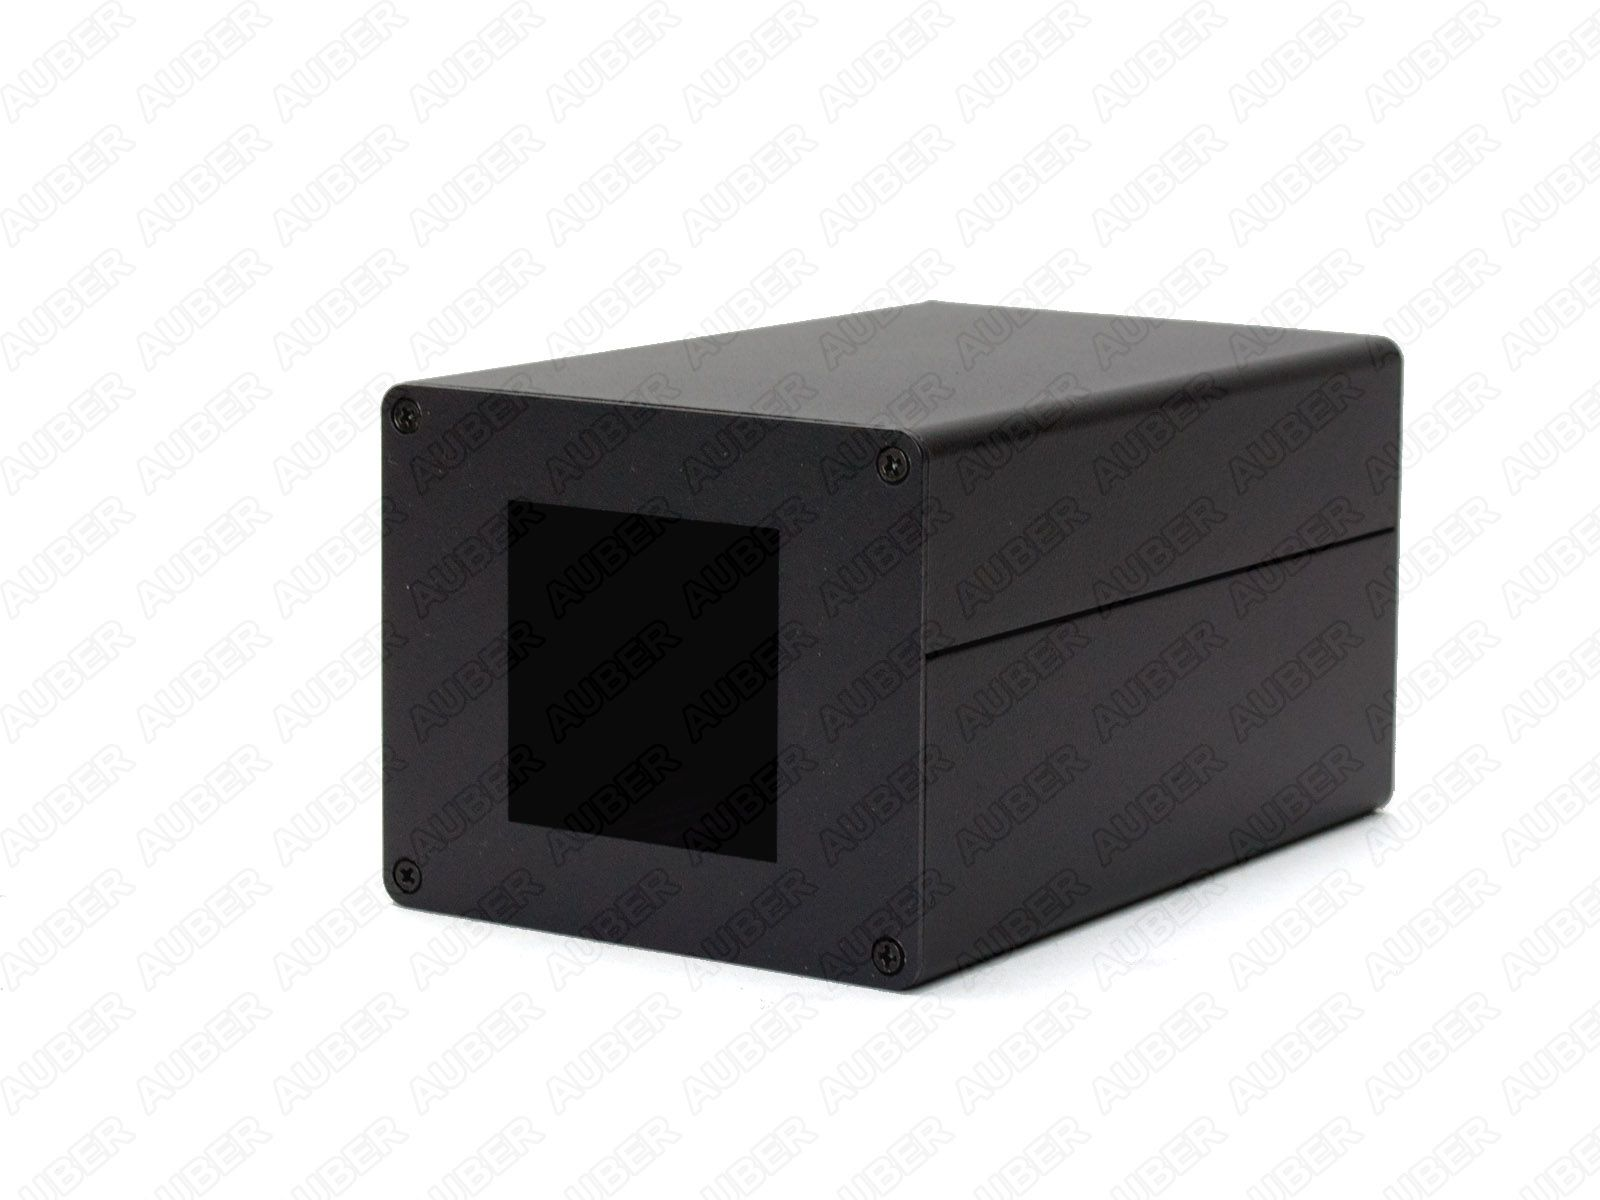 Compact Box for 1/16 DIN Gauge and Timer (Black)